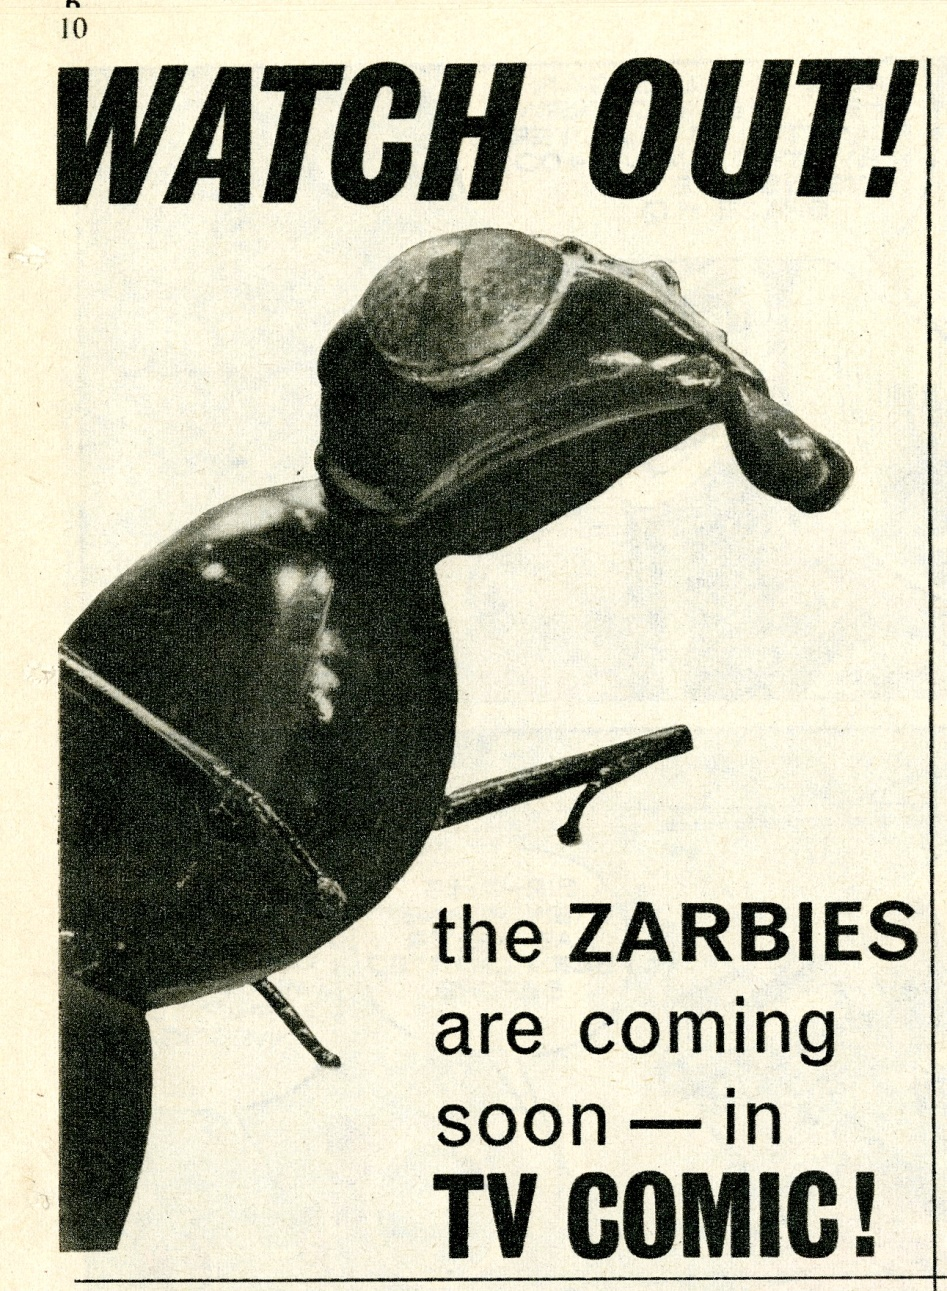 TV Comic #689, February 27, 1965, previewing appearance by the Zarbi